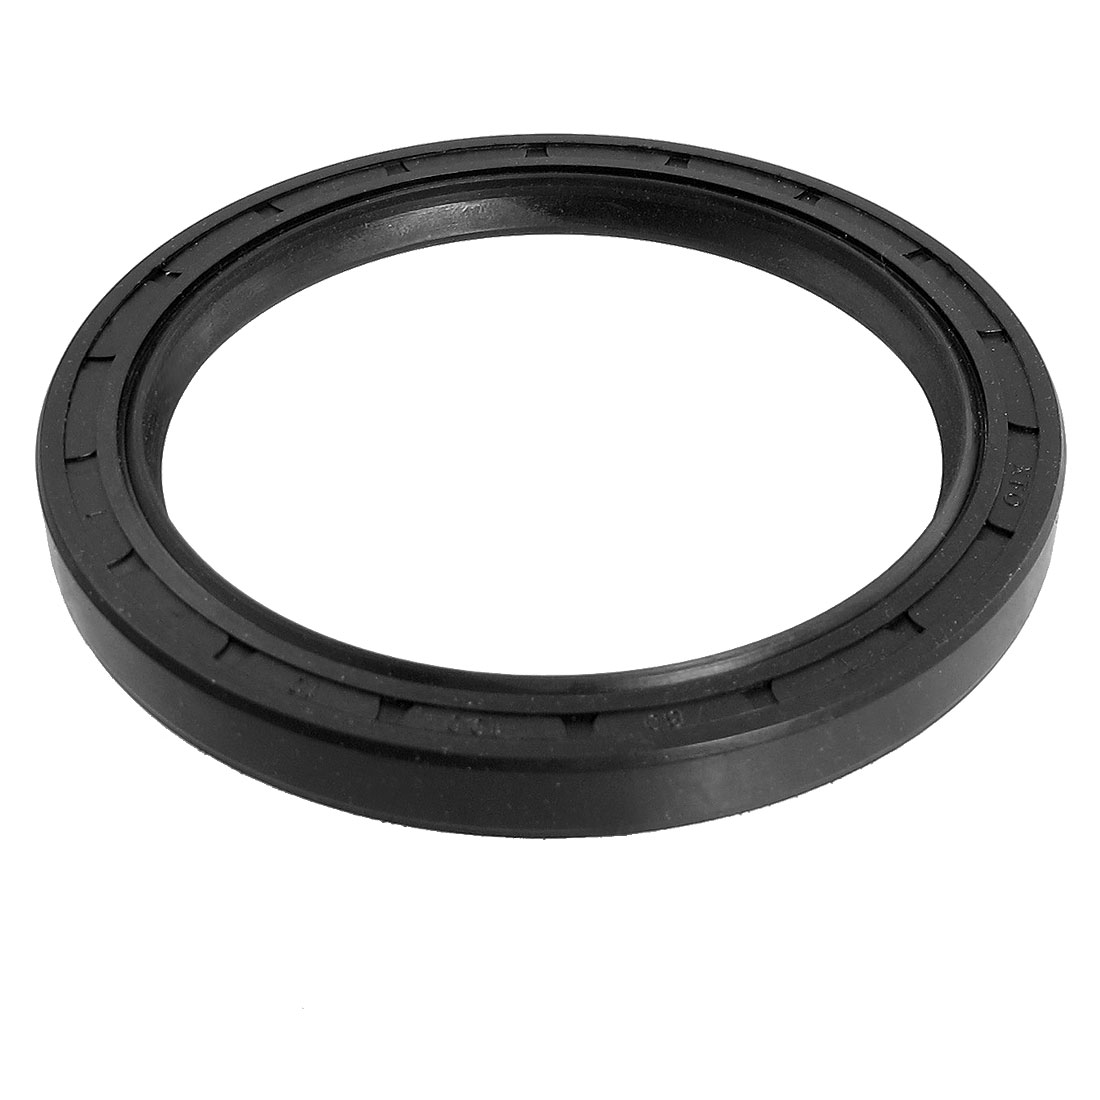 Black Nitrile Rubber Dual Lips Oil Shaft Seal TC 80mm x 100mm x 10mm